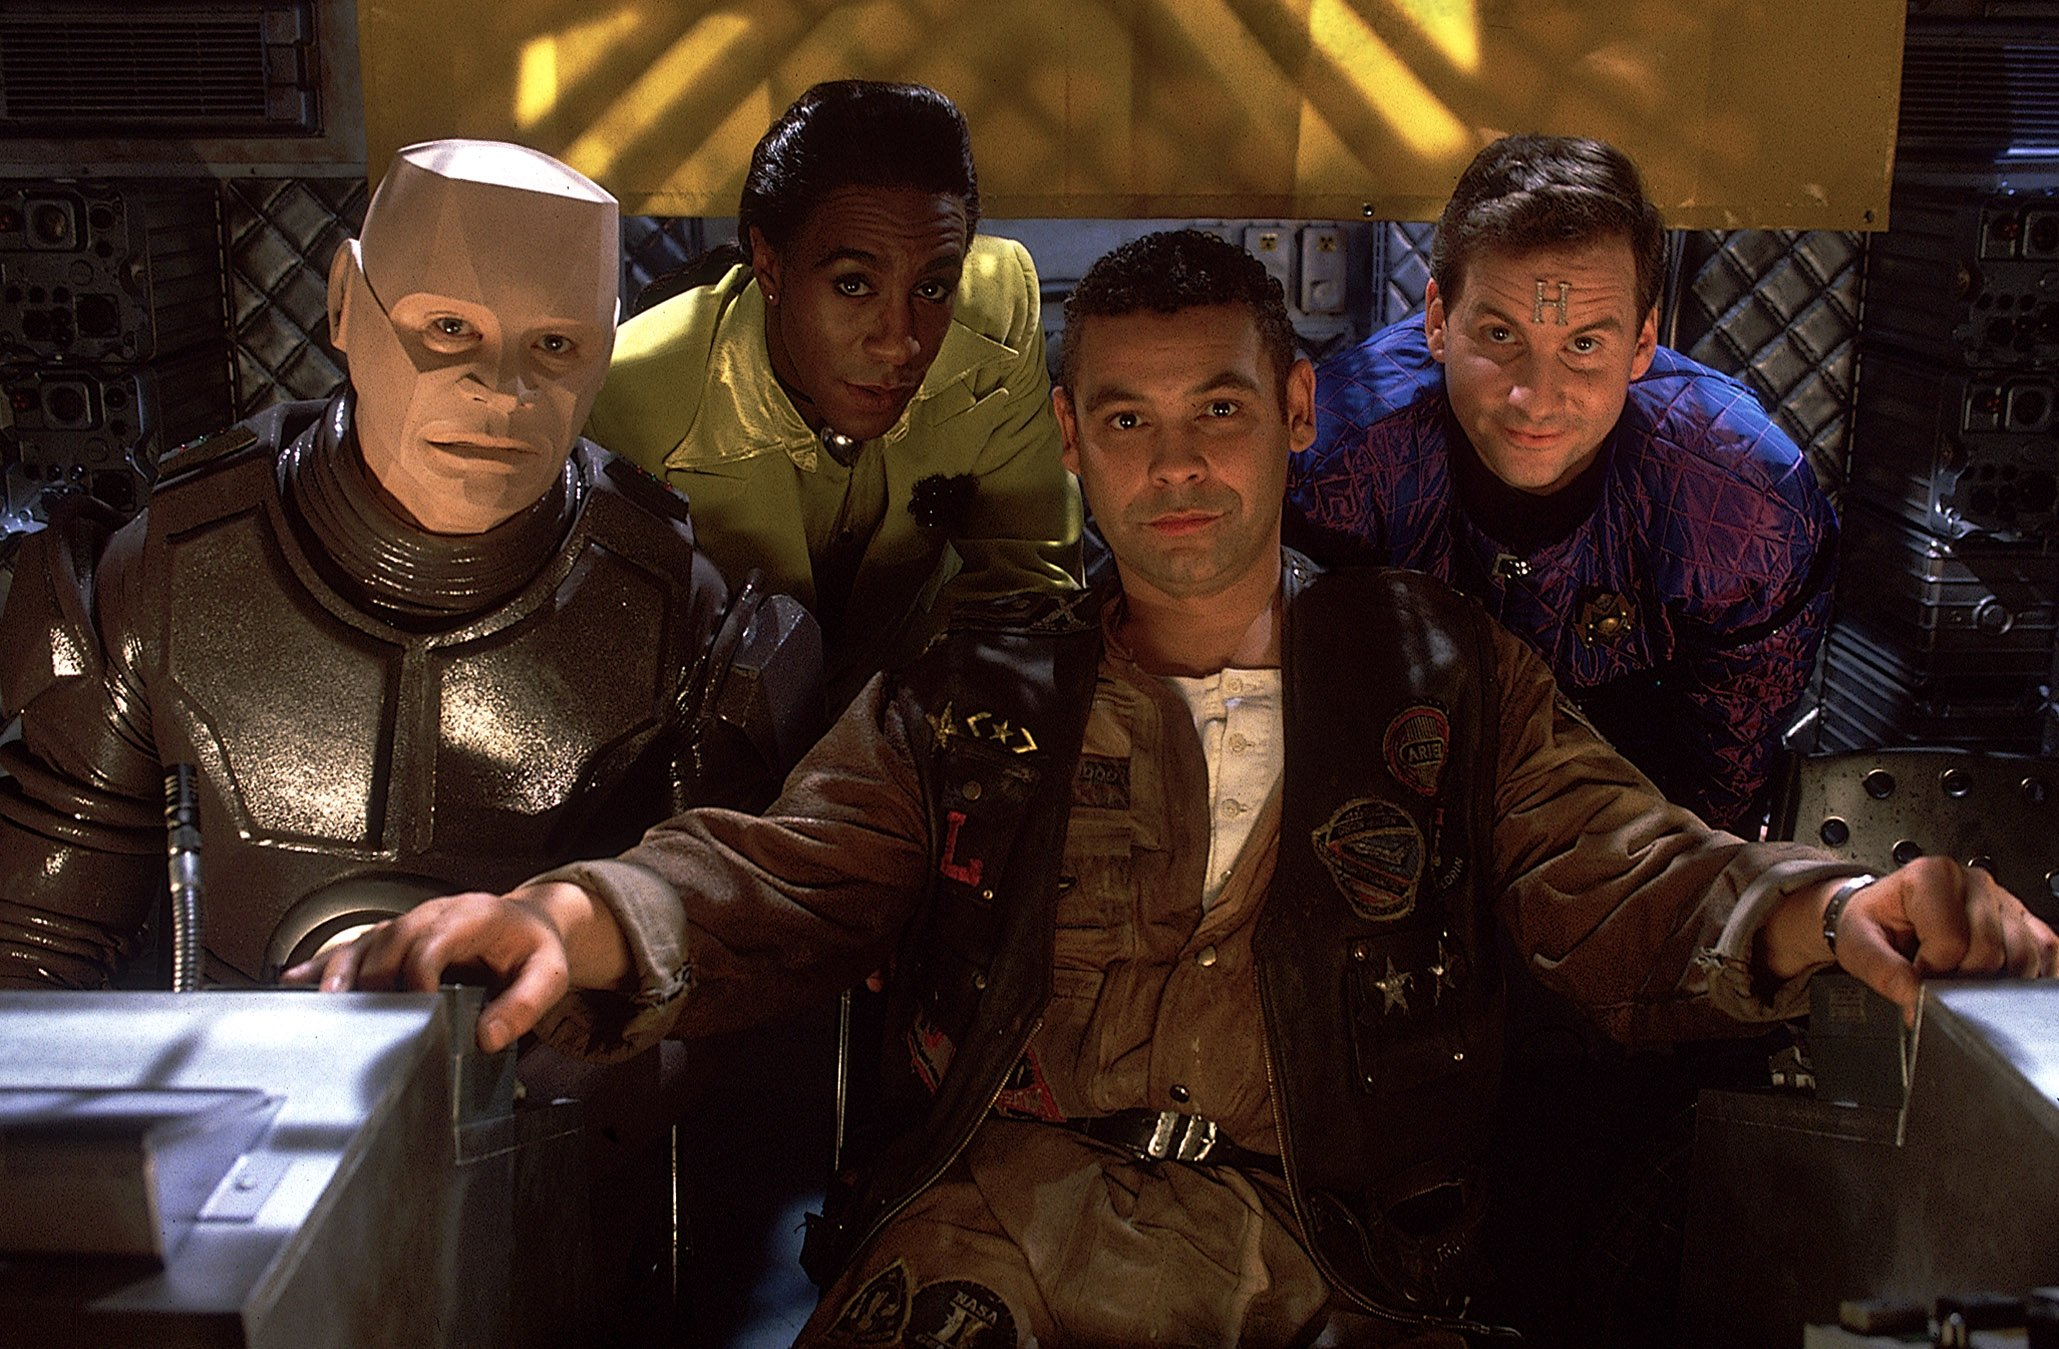 'Welcome back boys!' Red Dwarf XI gets the thumbs up as new series airs